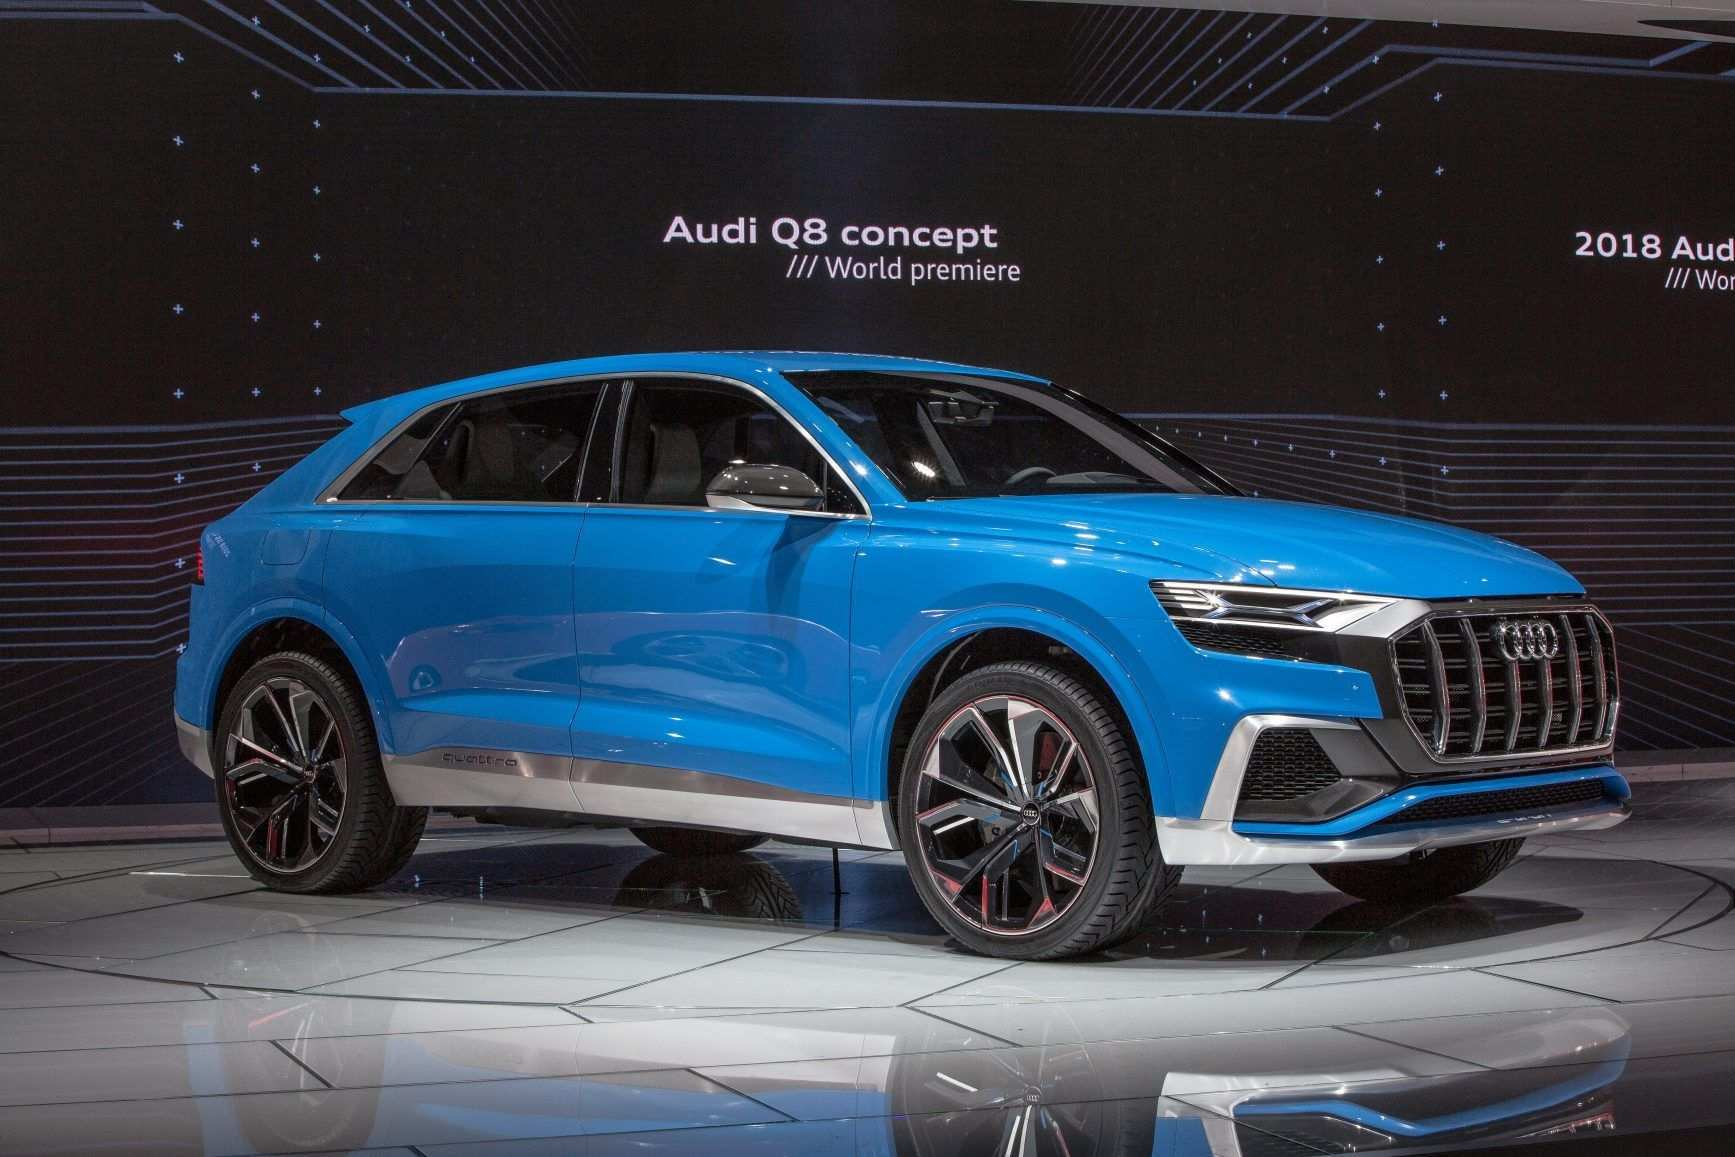 2020 Audi Q8 Design, Interior, And Price >> 2020 Audi Q8 Review Interior Engine Price Upcoming New Car